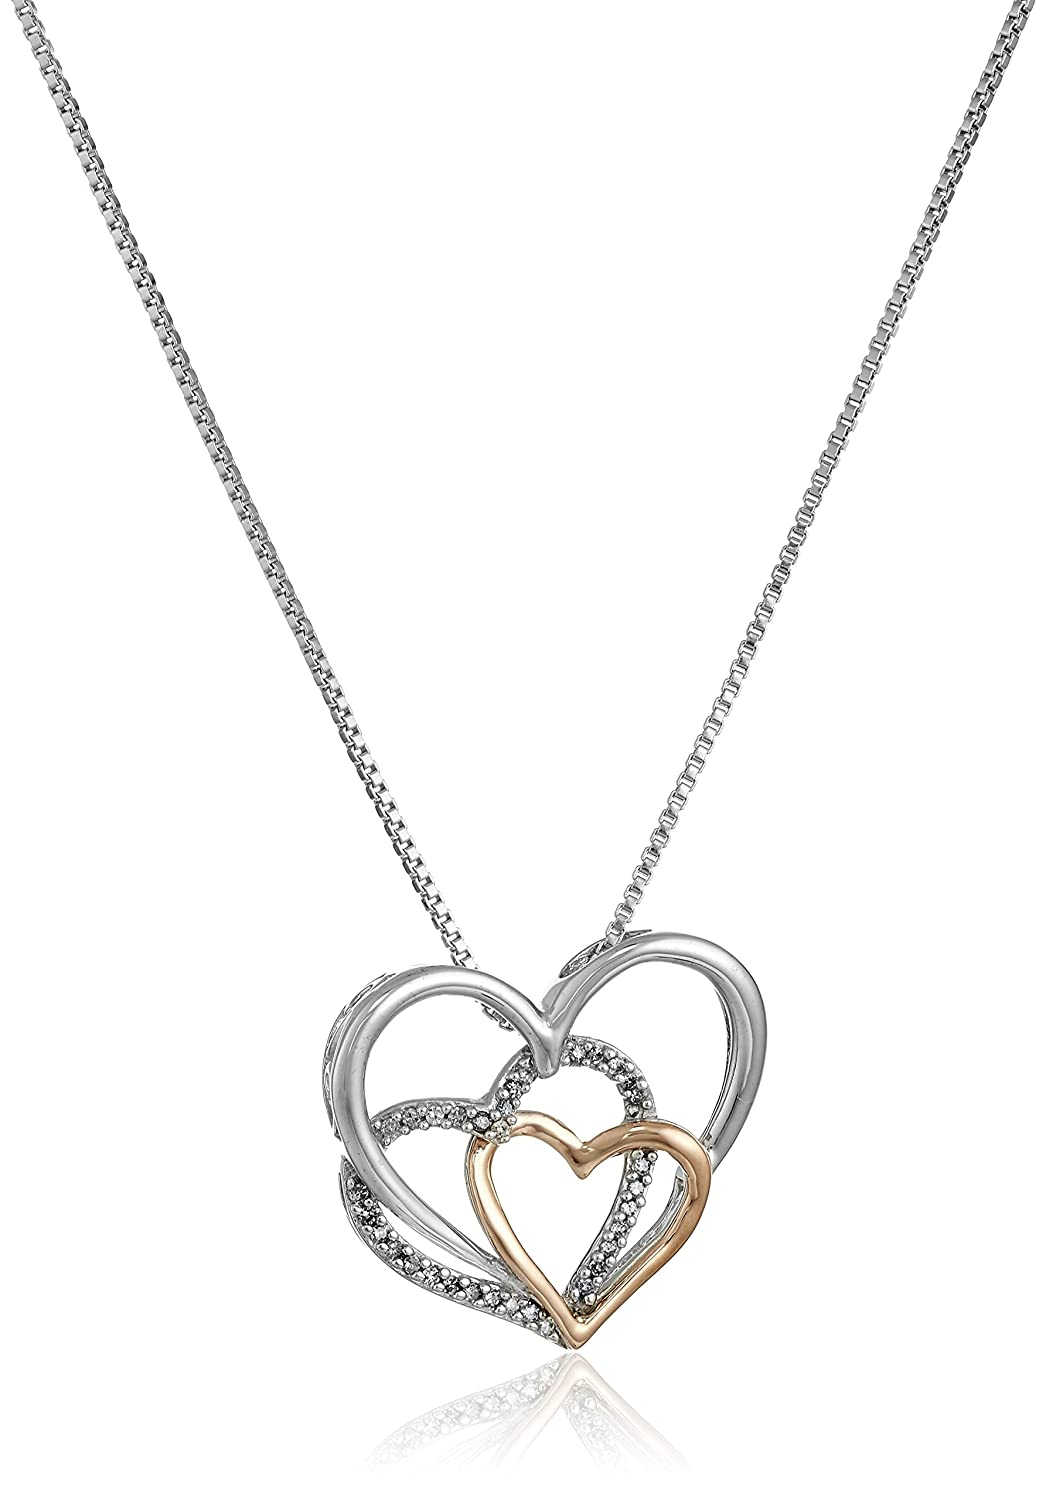 29ab7a2887 Amazon.com: Sterling Silver and 14k Rose Gold Diamond Accent Triple Heart  Pendant Necklace,18